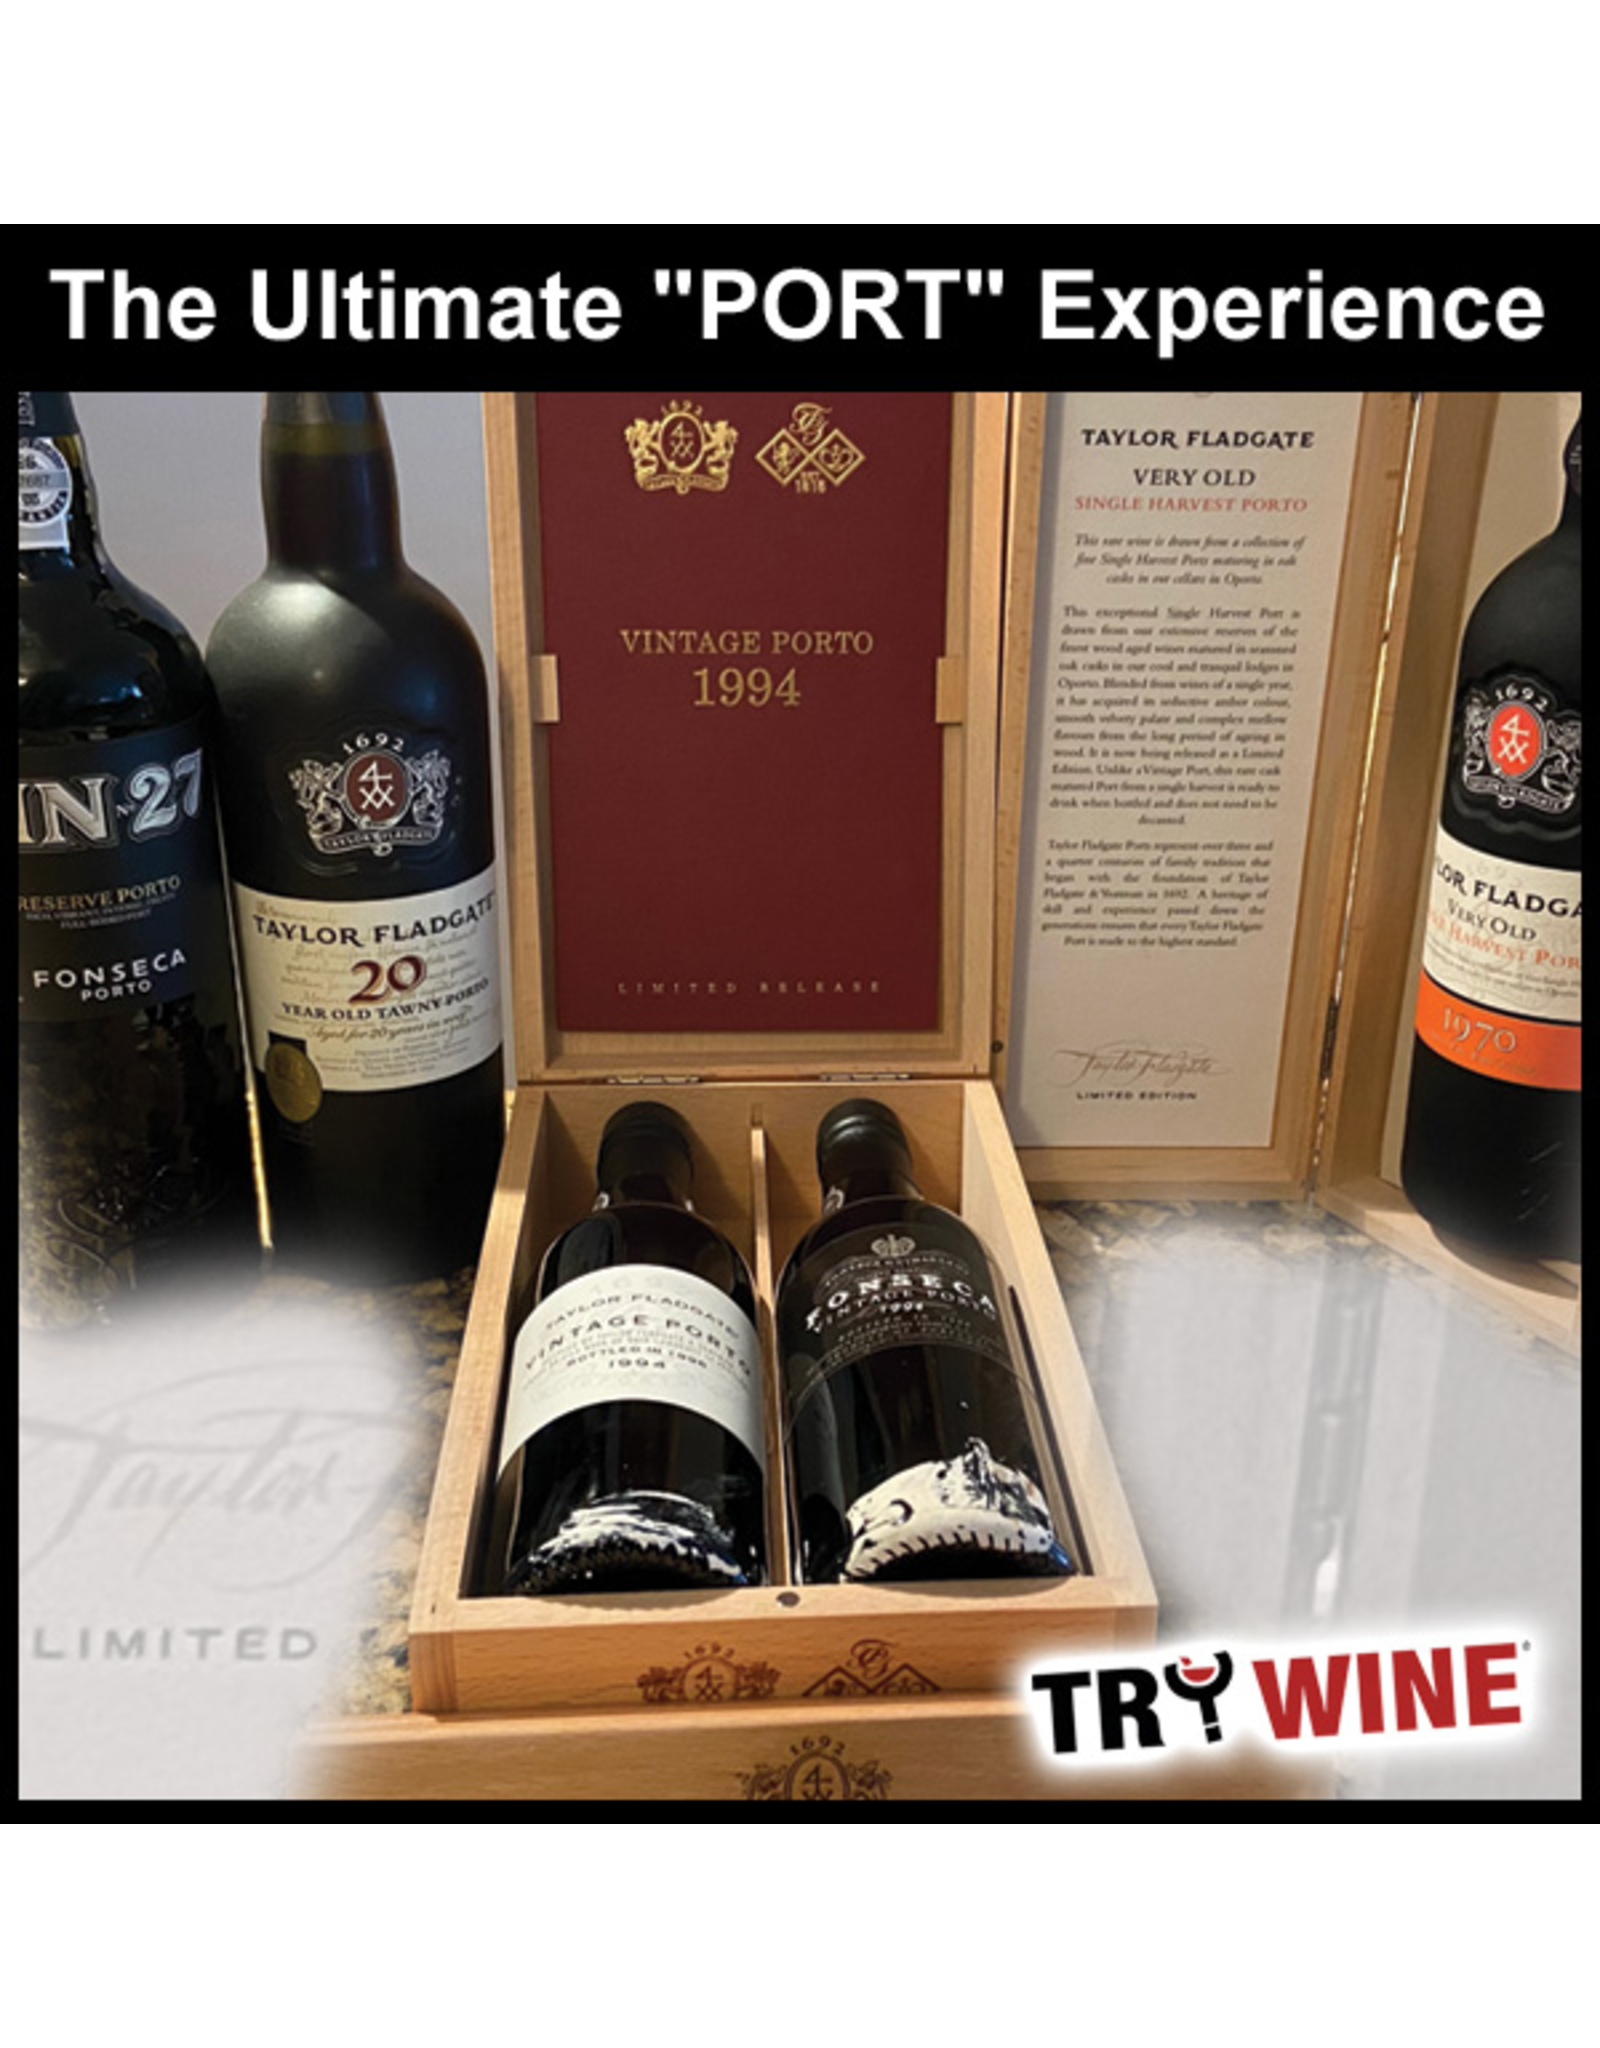 Special EVENTS PER PERSON - PORT TASTING with Appetizer Pairings, Thursday, May 27th, 2021 - Start 7pm - Limited to 25 Persons. $99.00 + suggested Gratuity & Tax